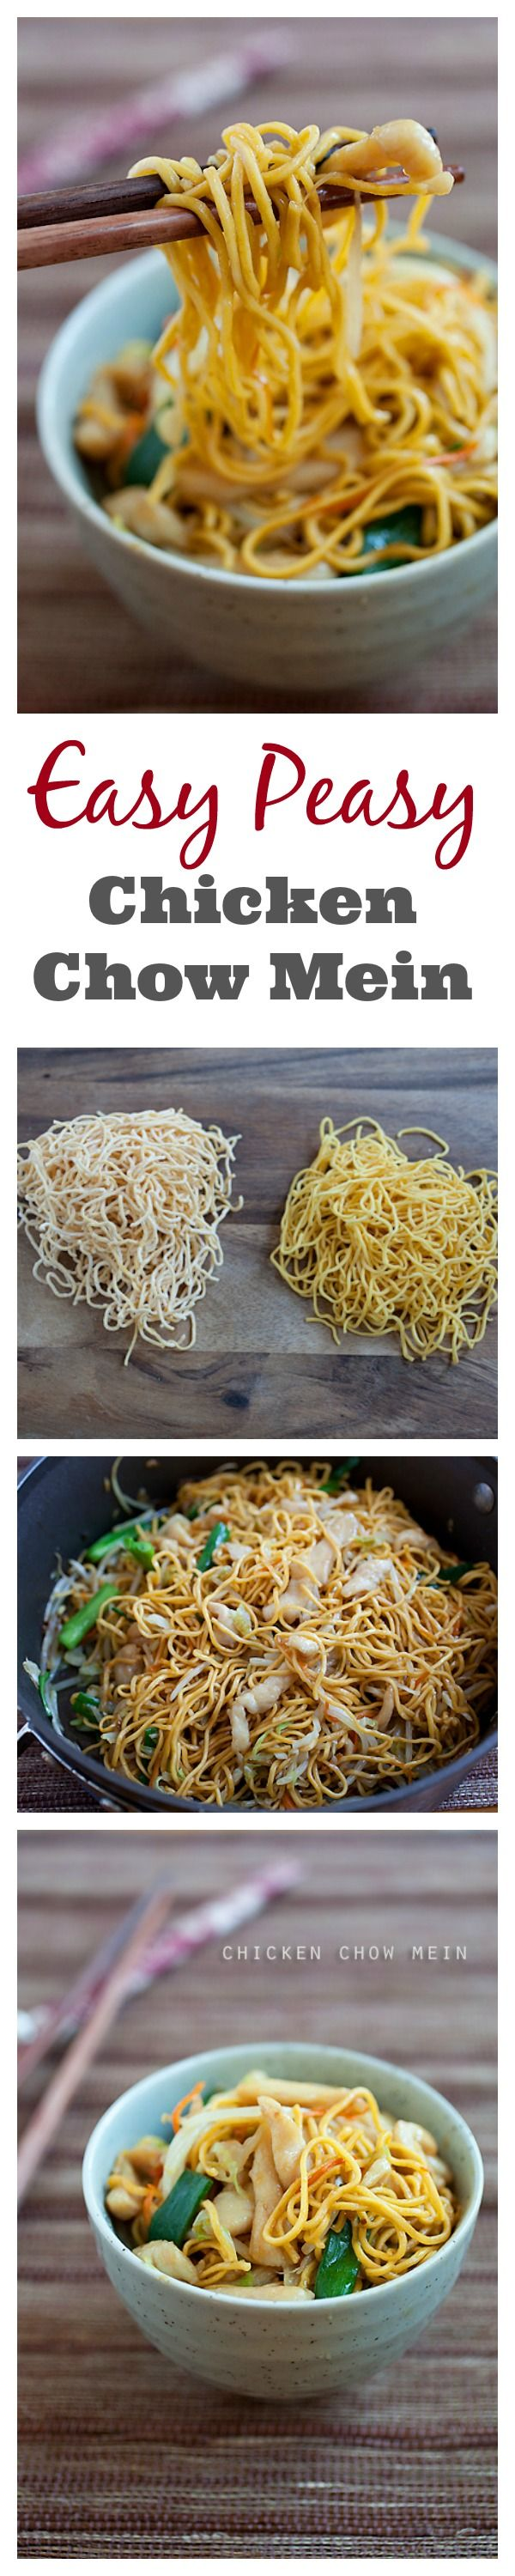 The best chicken chow mein recipe rasa malaysia easy and the most delicious chicken chow mein recipe that is much better and healthier than forumfinder